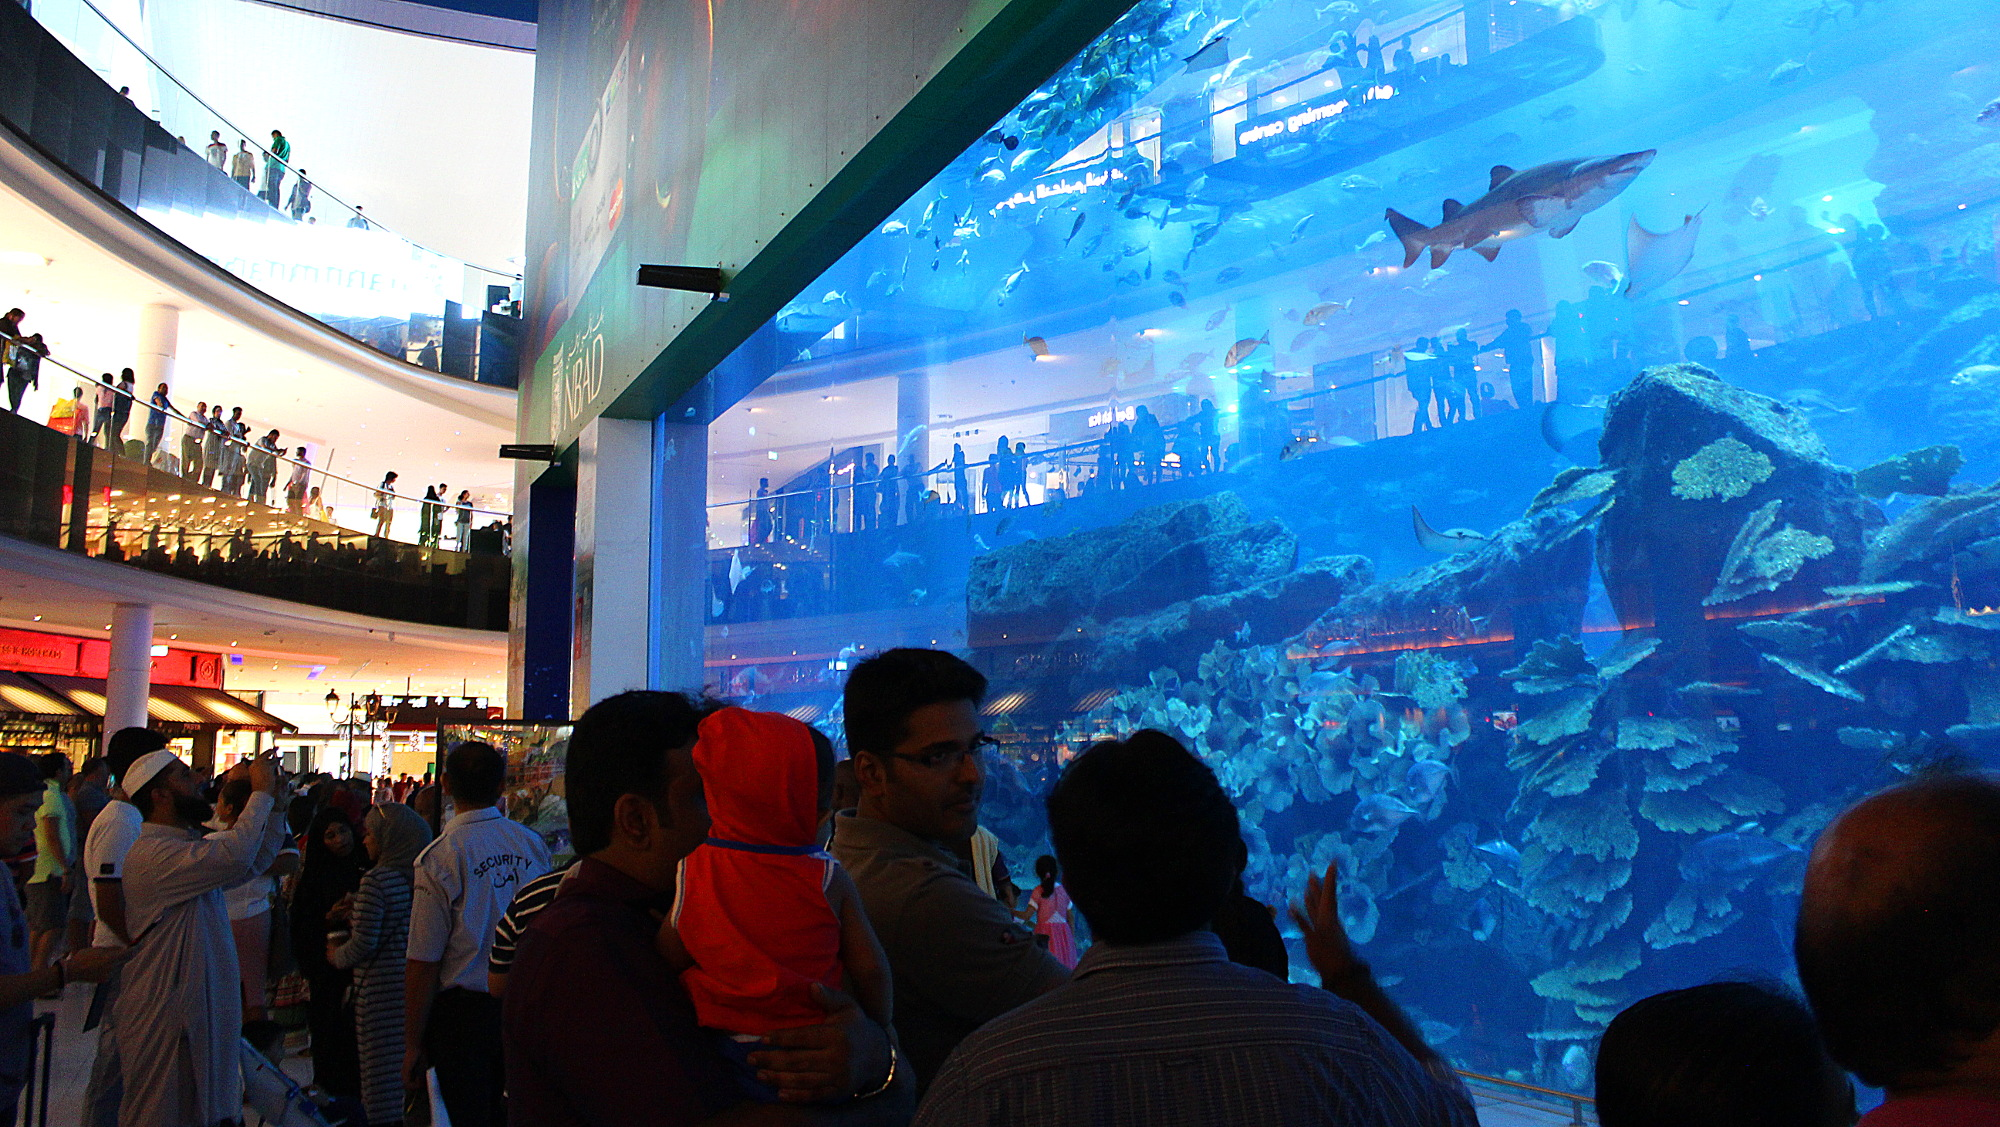 Spectator aquarium window for the Dubai Aquarium and Underwater Zoo in Dubai Mall.